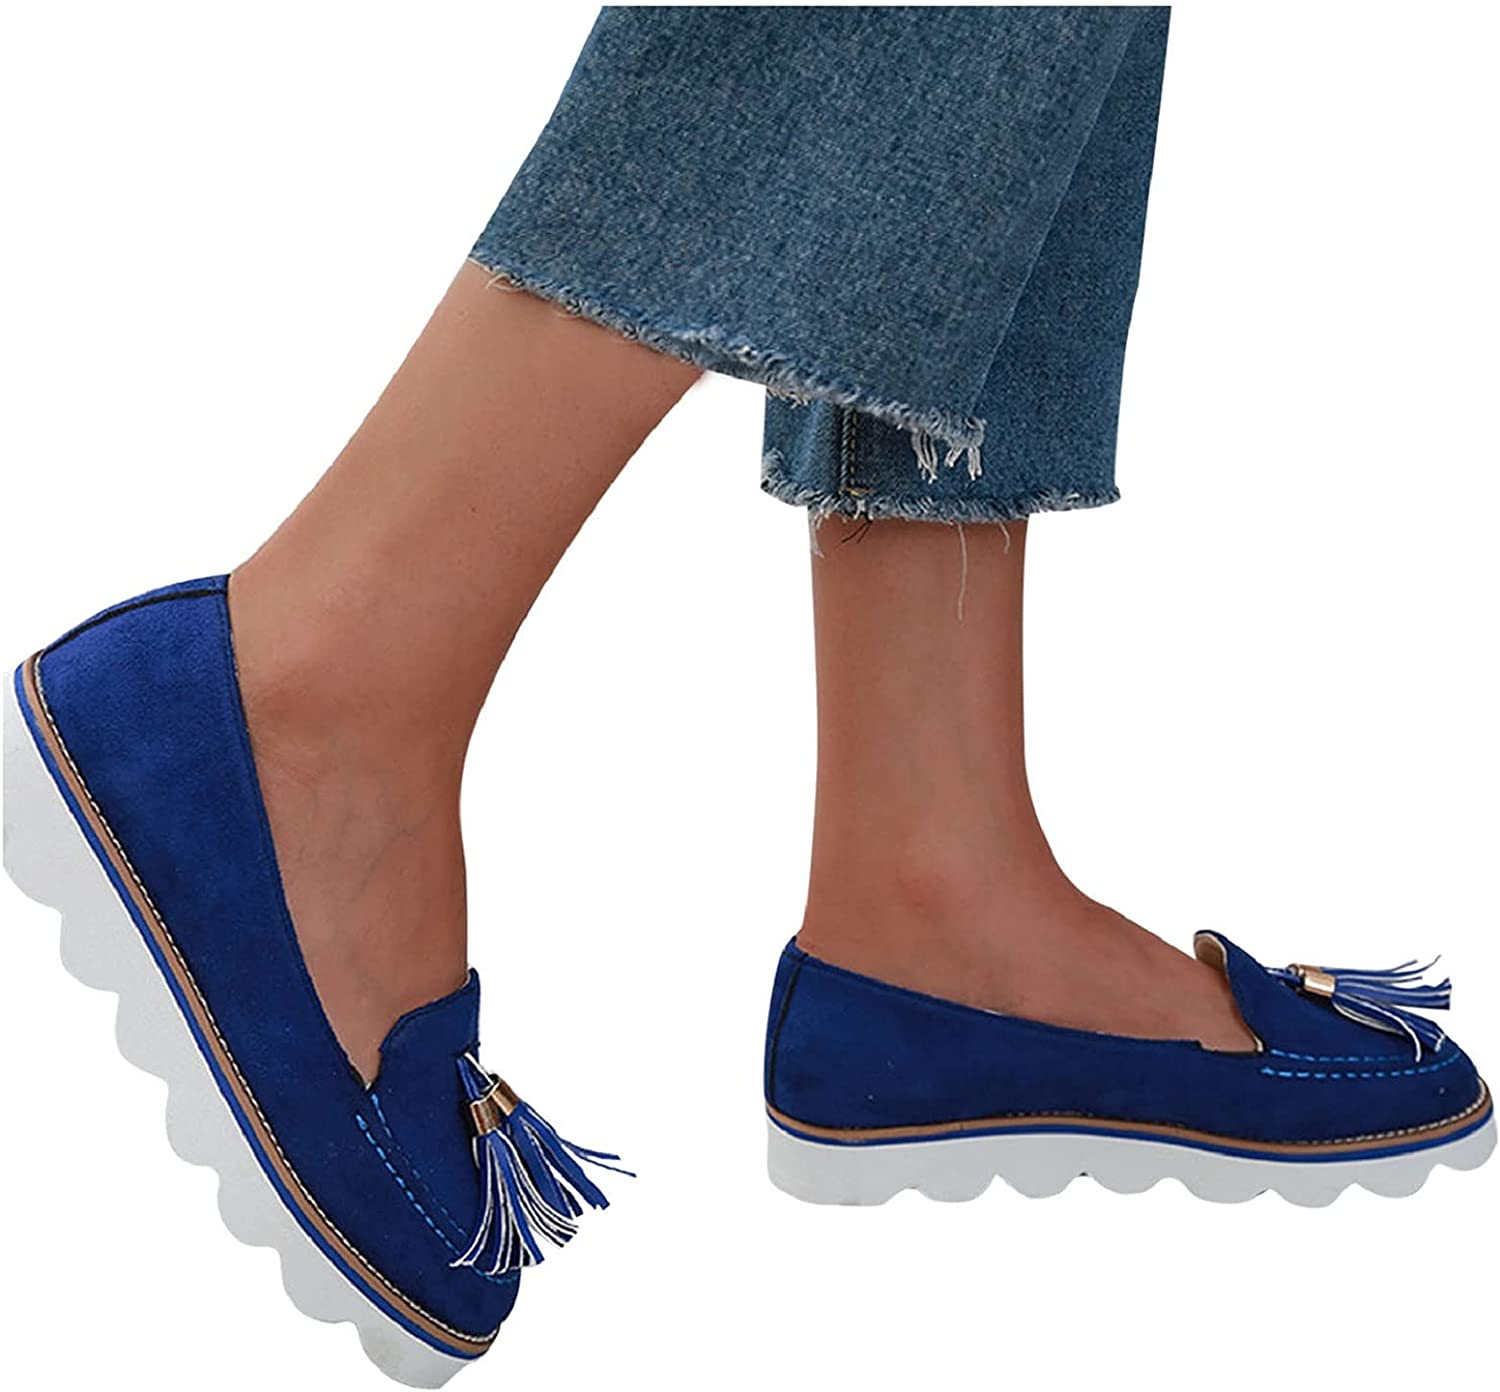 Fringed Slip On Loafers Shoes for Women, Suede Round Toe Platform Tassel Loafers Girl Casual Driving Walking Casual Boat Shoes